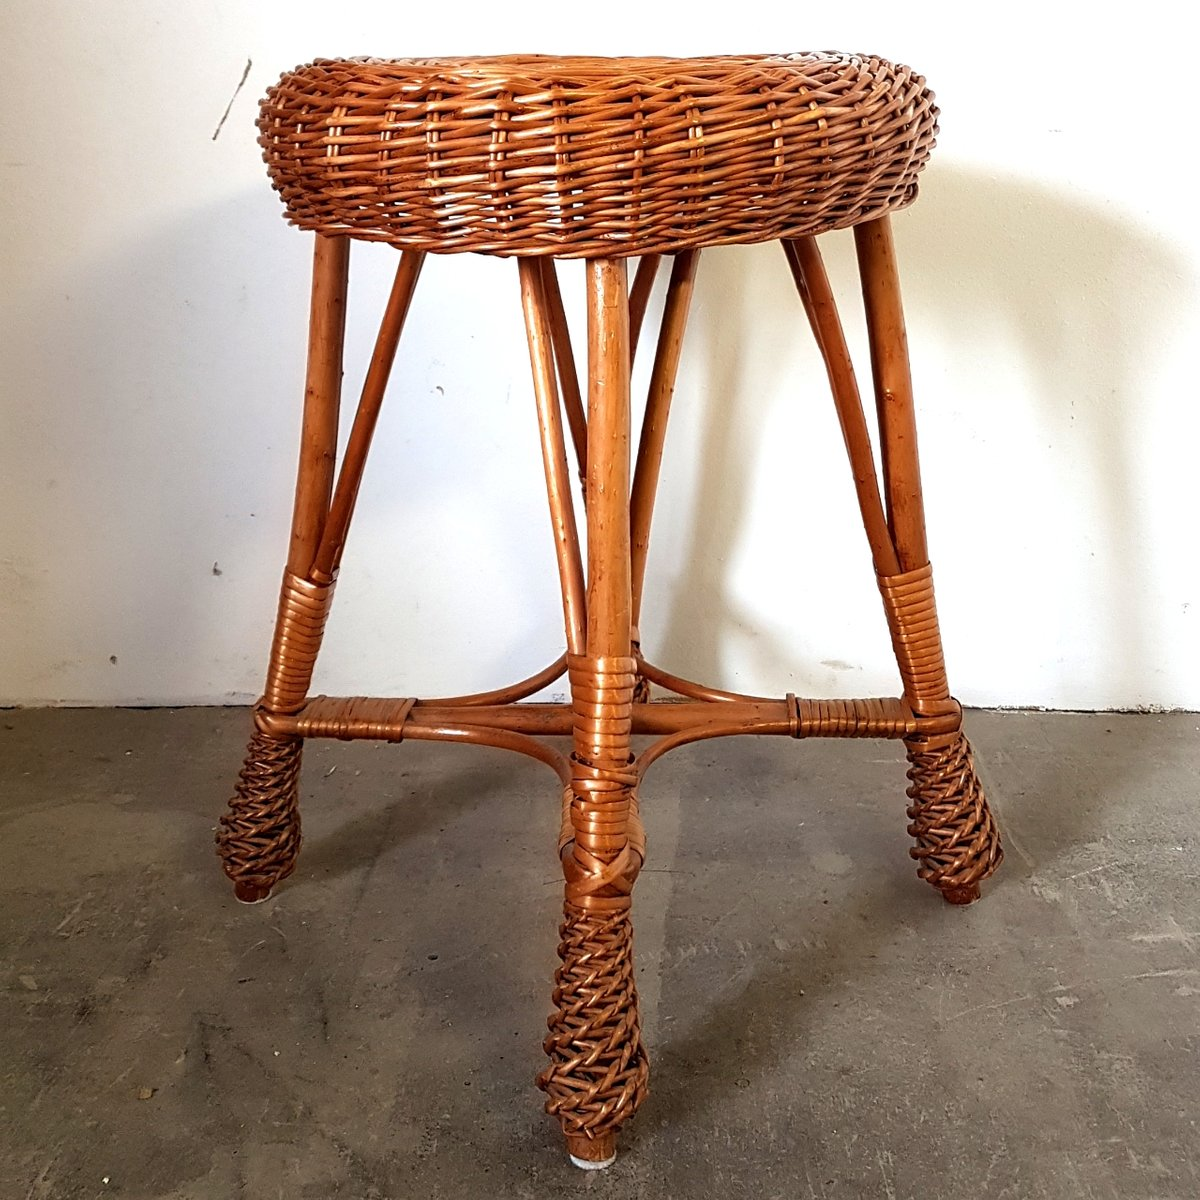 Rattan Hocker Rattan Blog Rattan Fusshocker